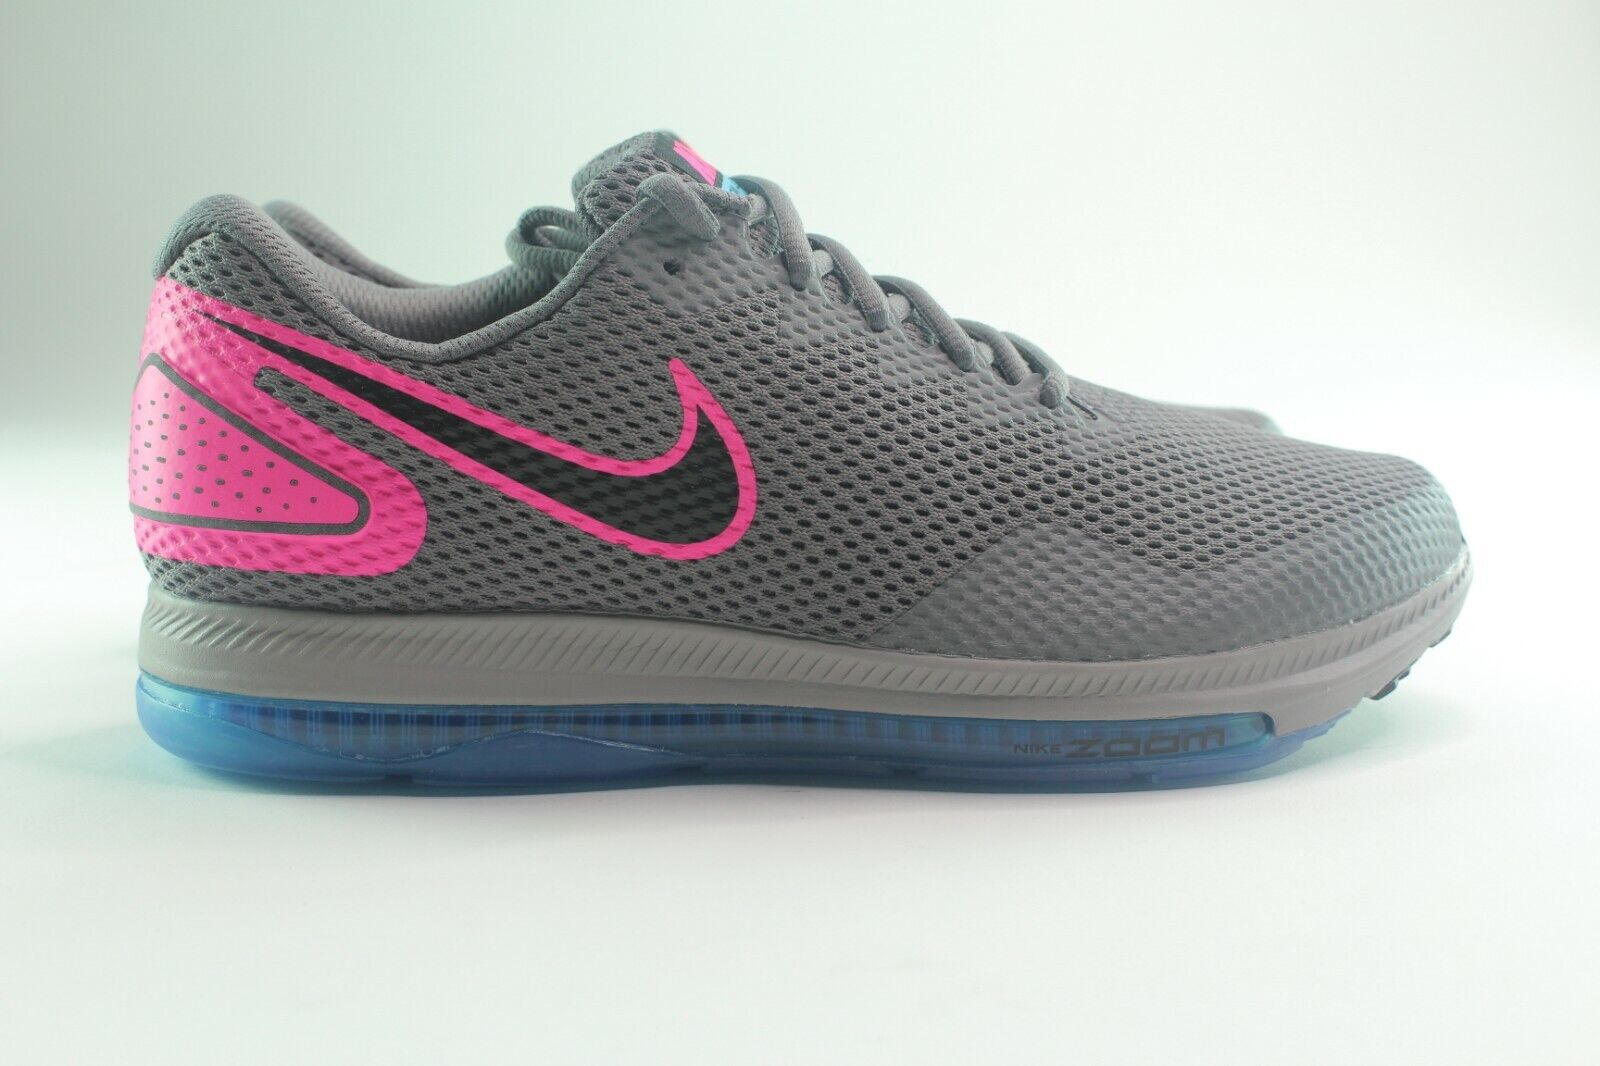 NIKE ZOOM All Out Low hommes 2 Taille 12.0 Gunsmoke Comfort Running